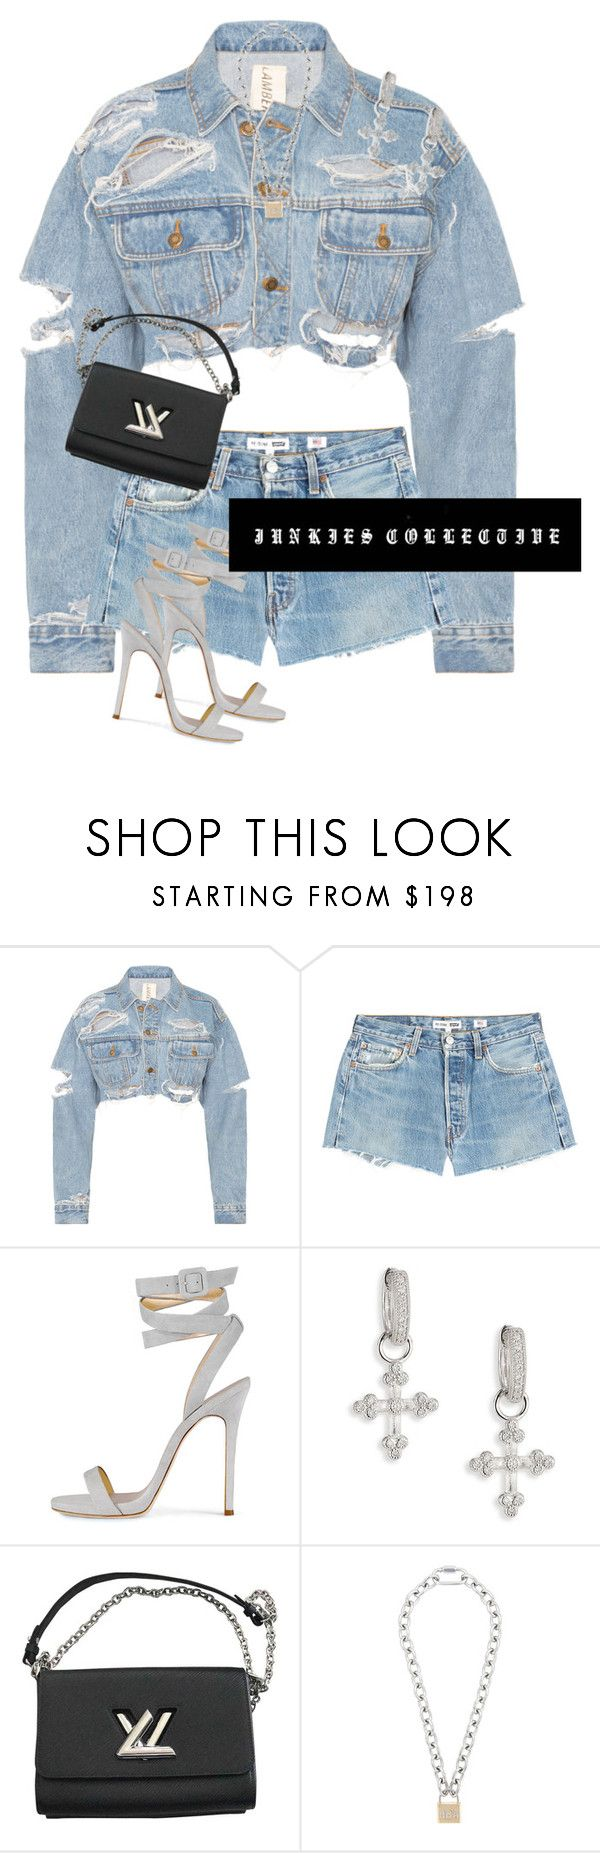 """Denim day"" by junkiescollective ❤ liked on Polyvore featuring RE/DONE, JudeFrances, Louis Vuitton and Hood by Air"